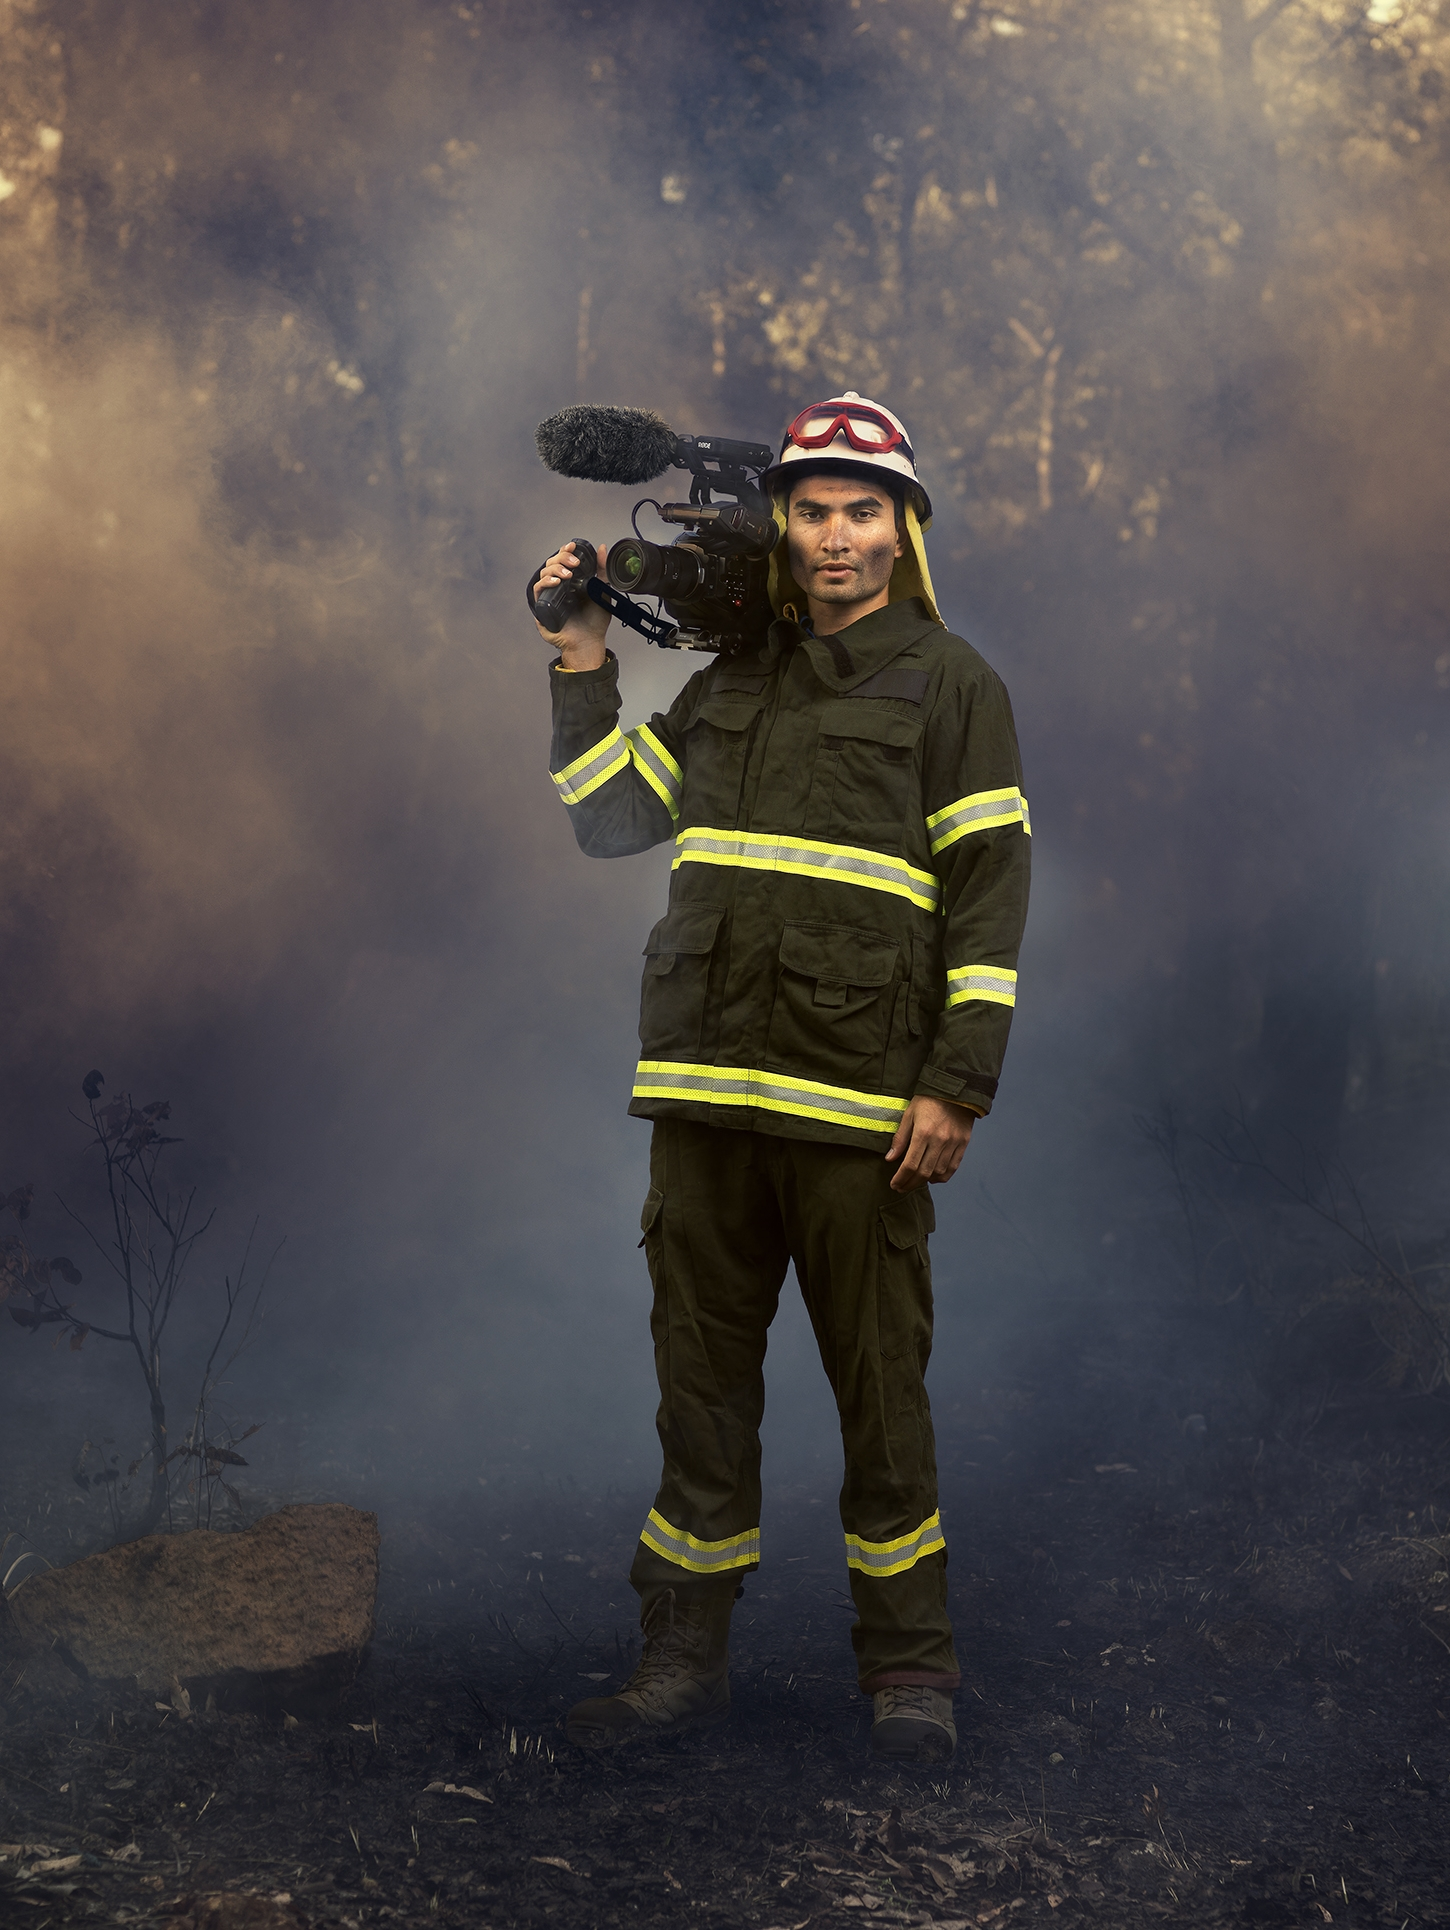 """This photo was taken whilst shooting for the series Bushfire Wars showed on National Geographic. I spent two years filming in the Australian bush with firefighters"" - Credit: Dear Rabbit Studios"